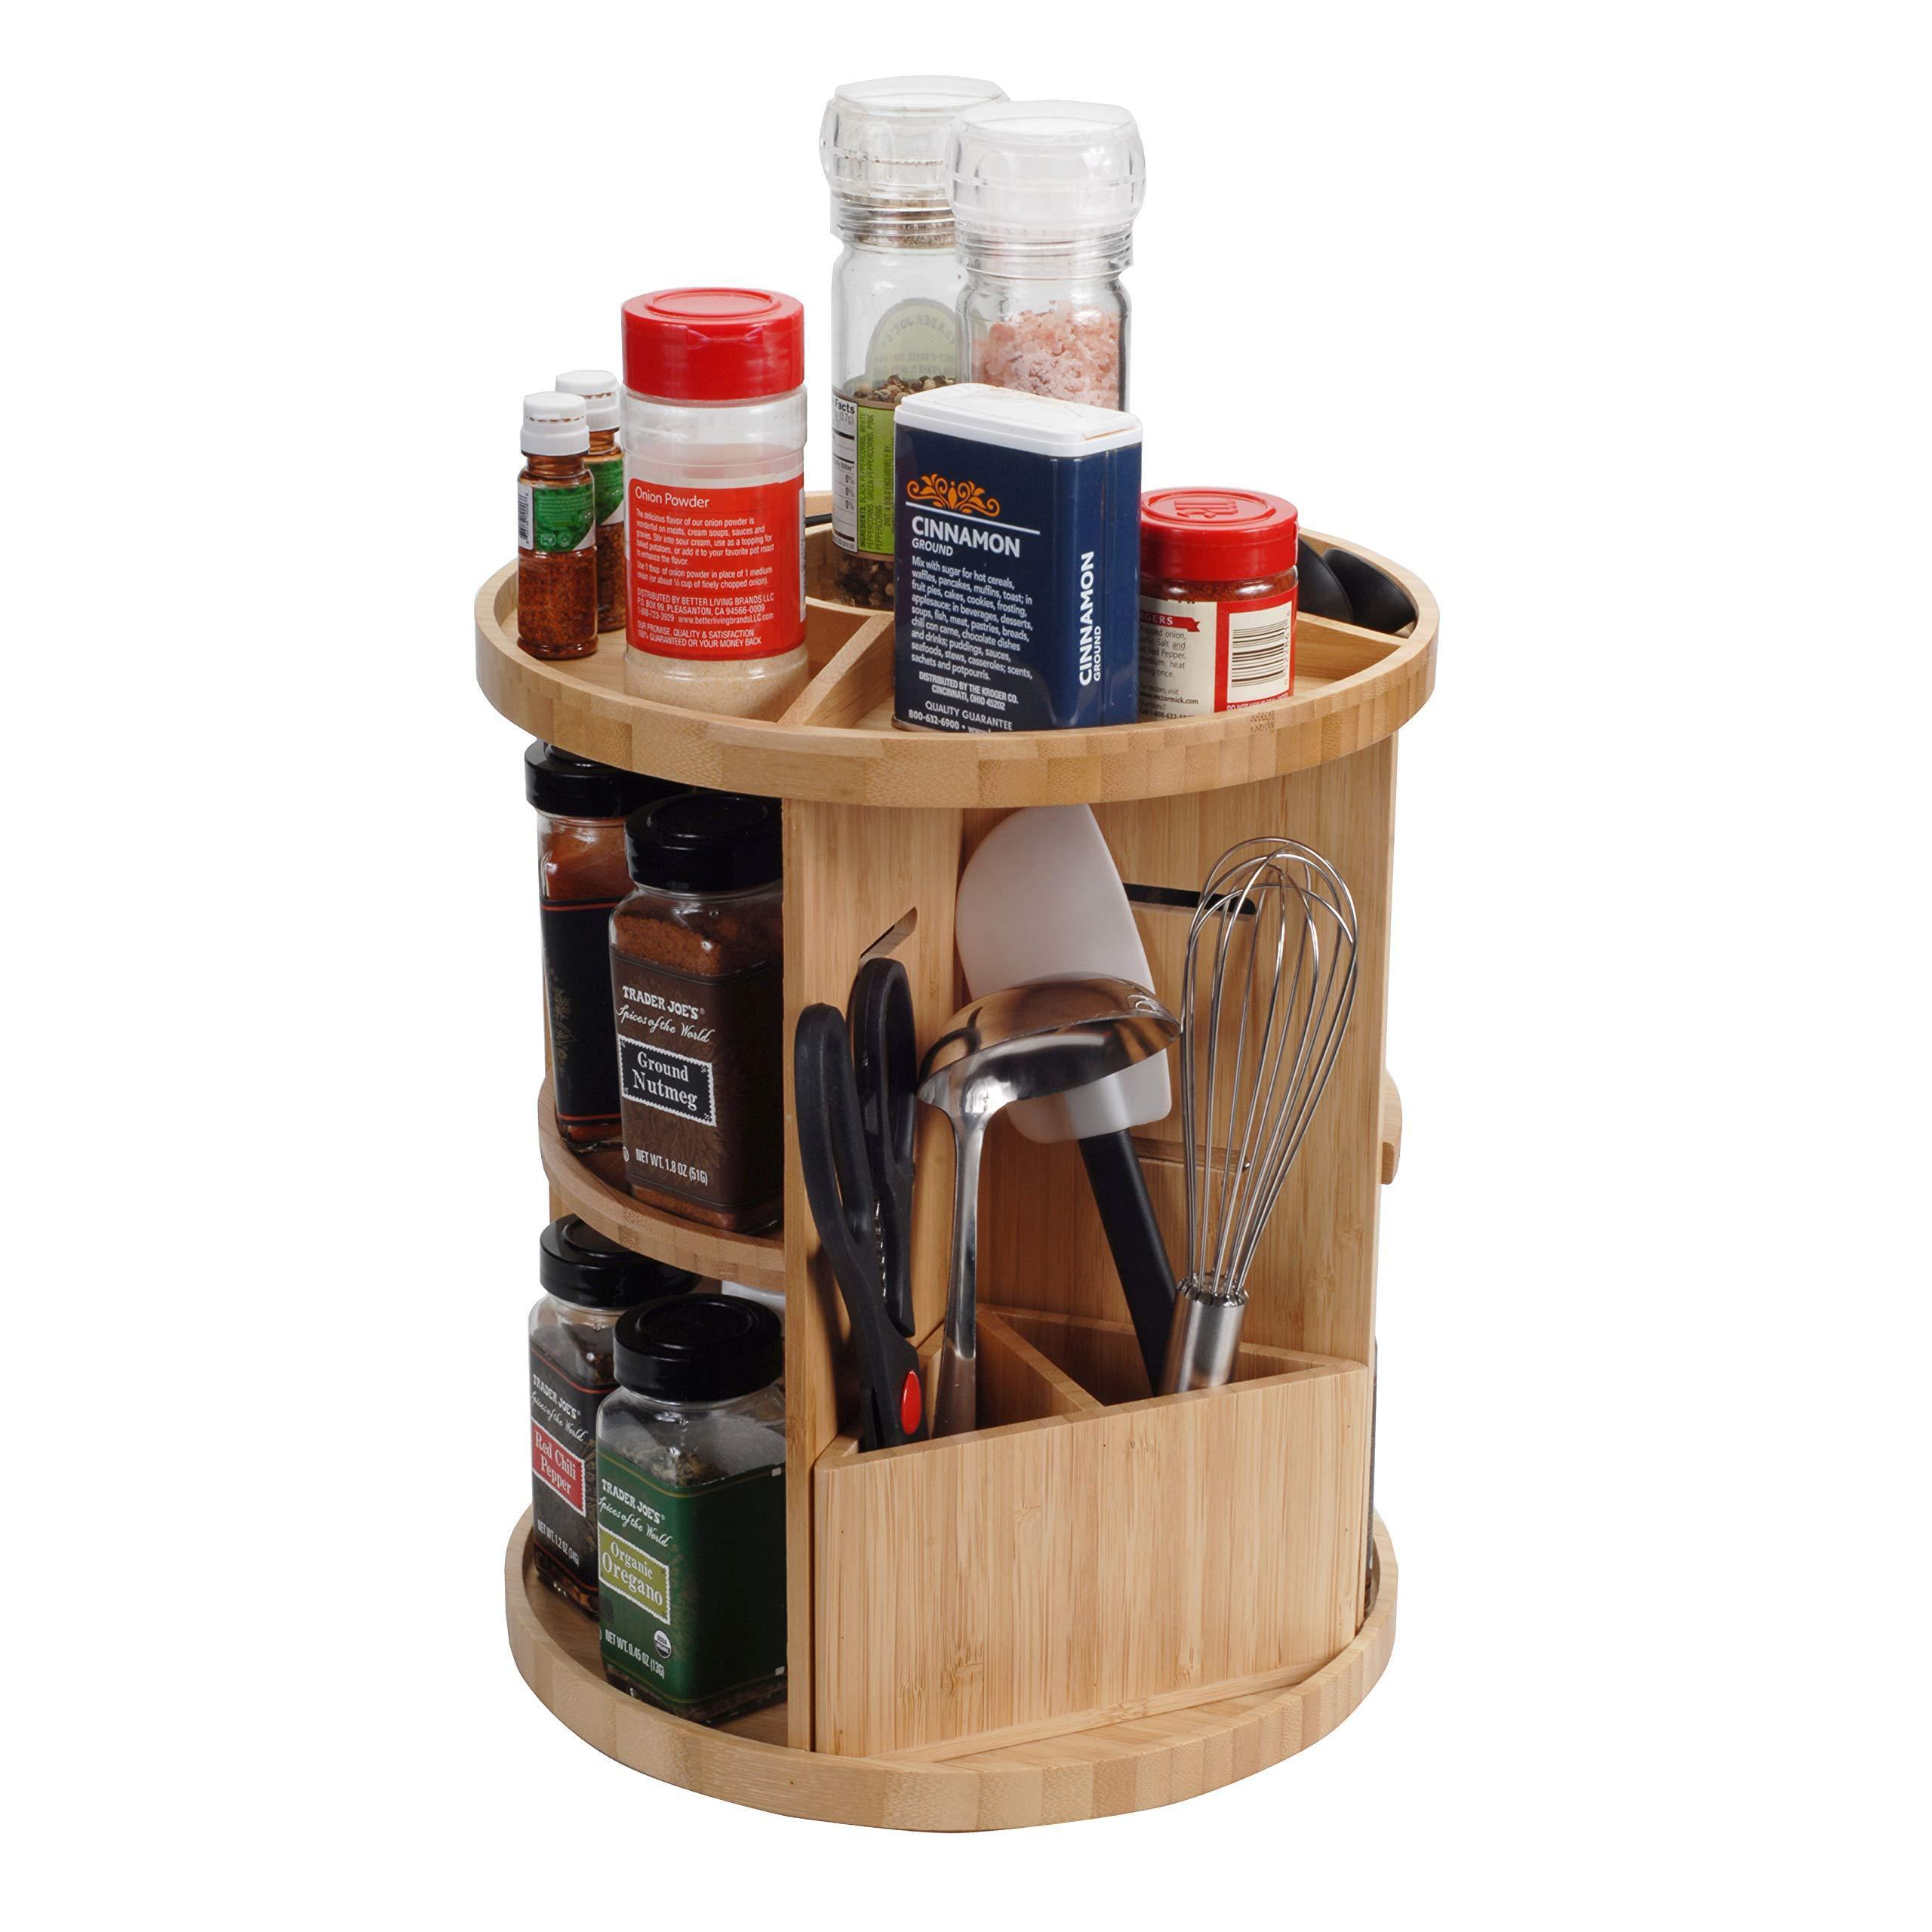 On amazon bamboo 360 rotating spice rack adjustable multi level kitchen organizer with holder for utensils spatulas serving spoons other cooking tools